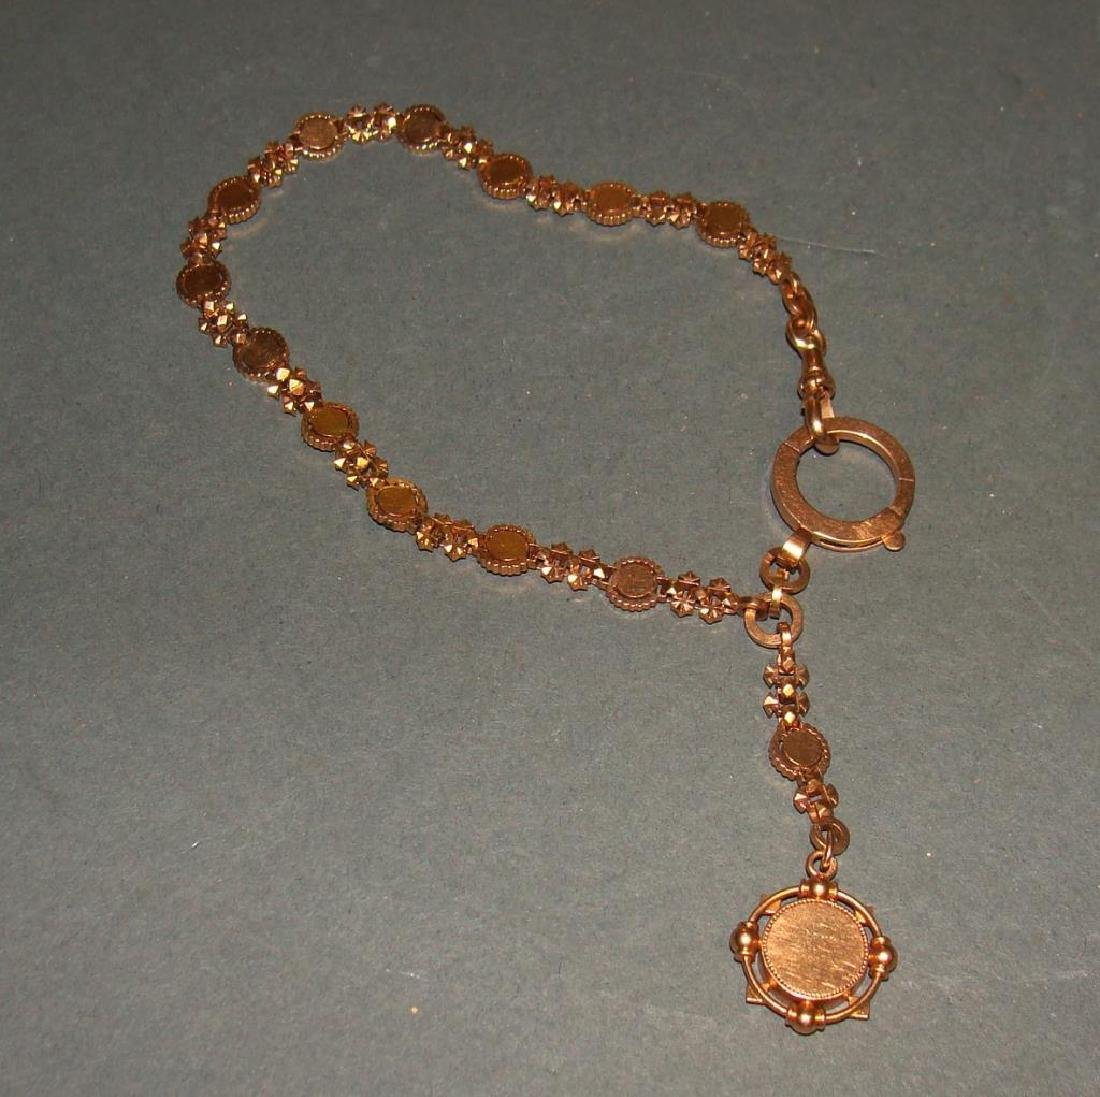 18kt Gold Victorian Watch Fob with Seed Pearls